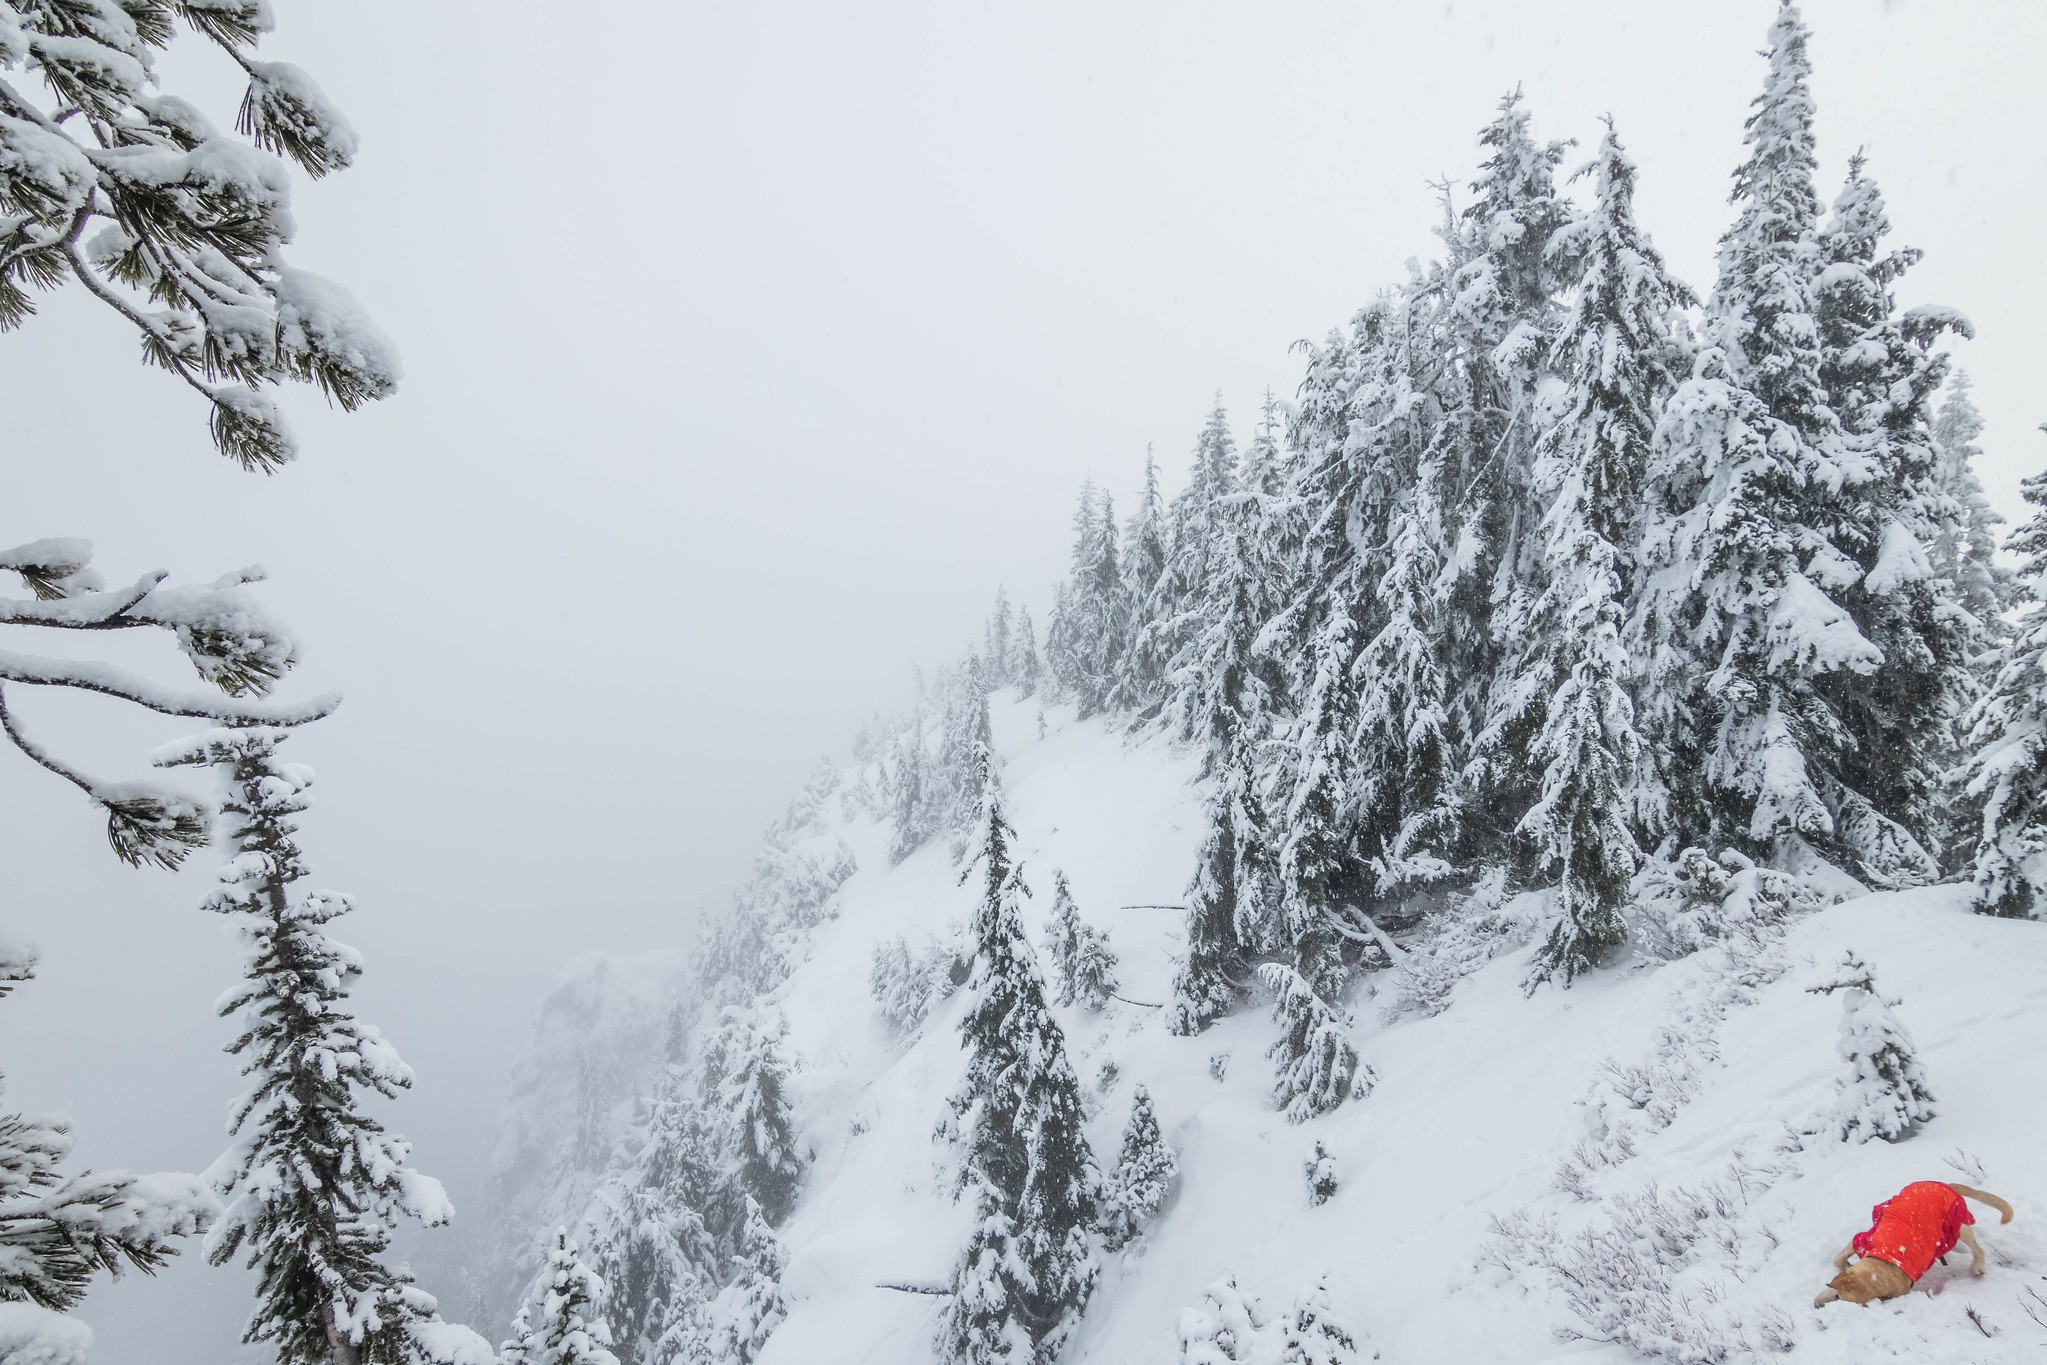 South view on Lux Peak